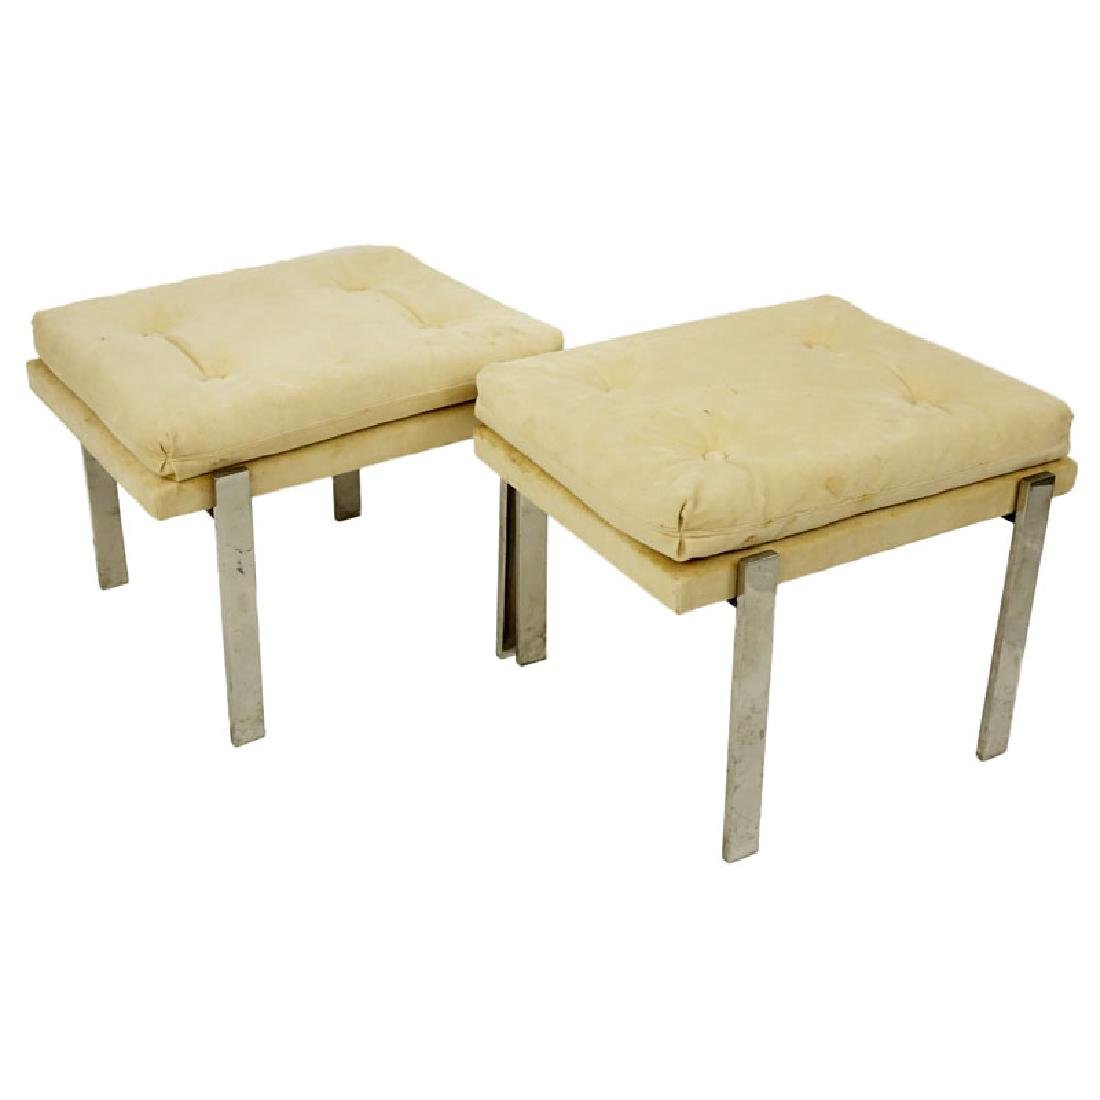 Pair of Mid Century Modern Chrome and Upholstered